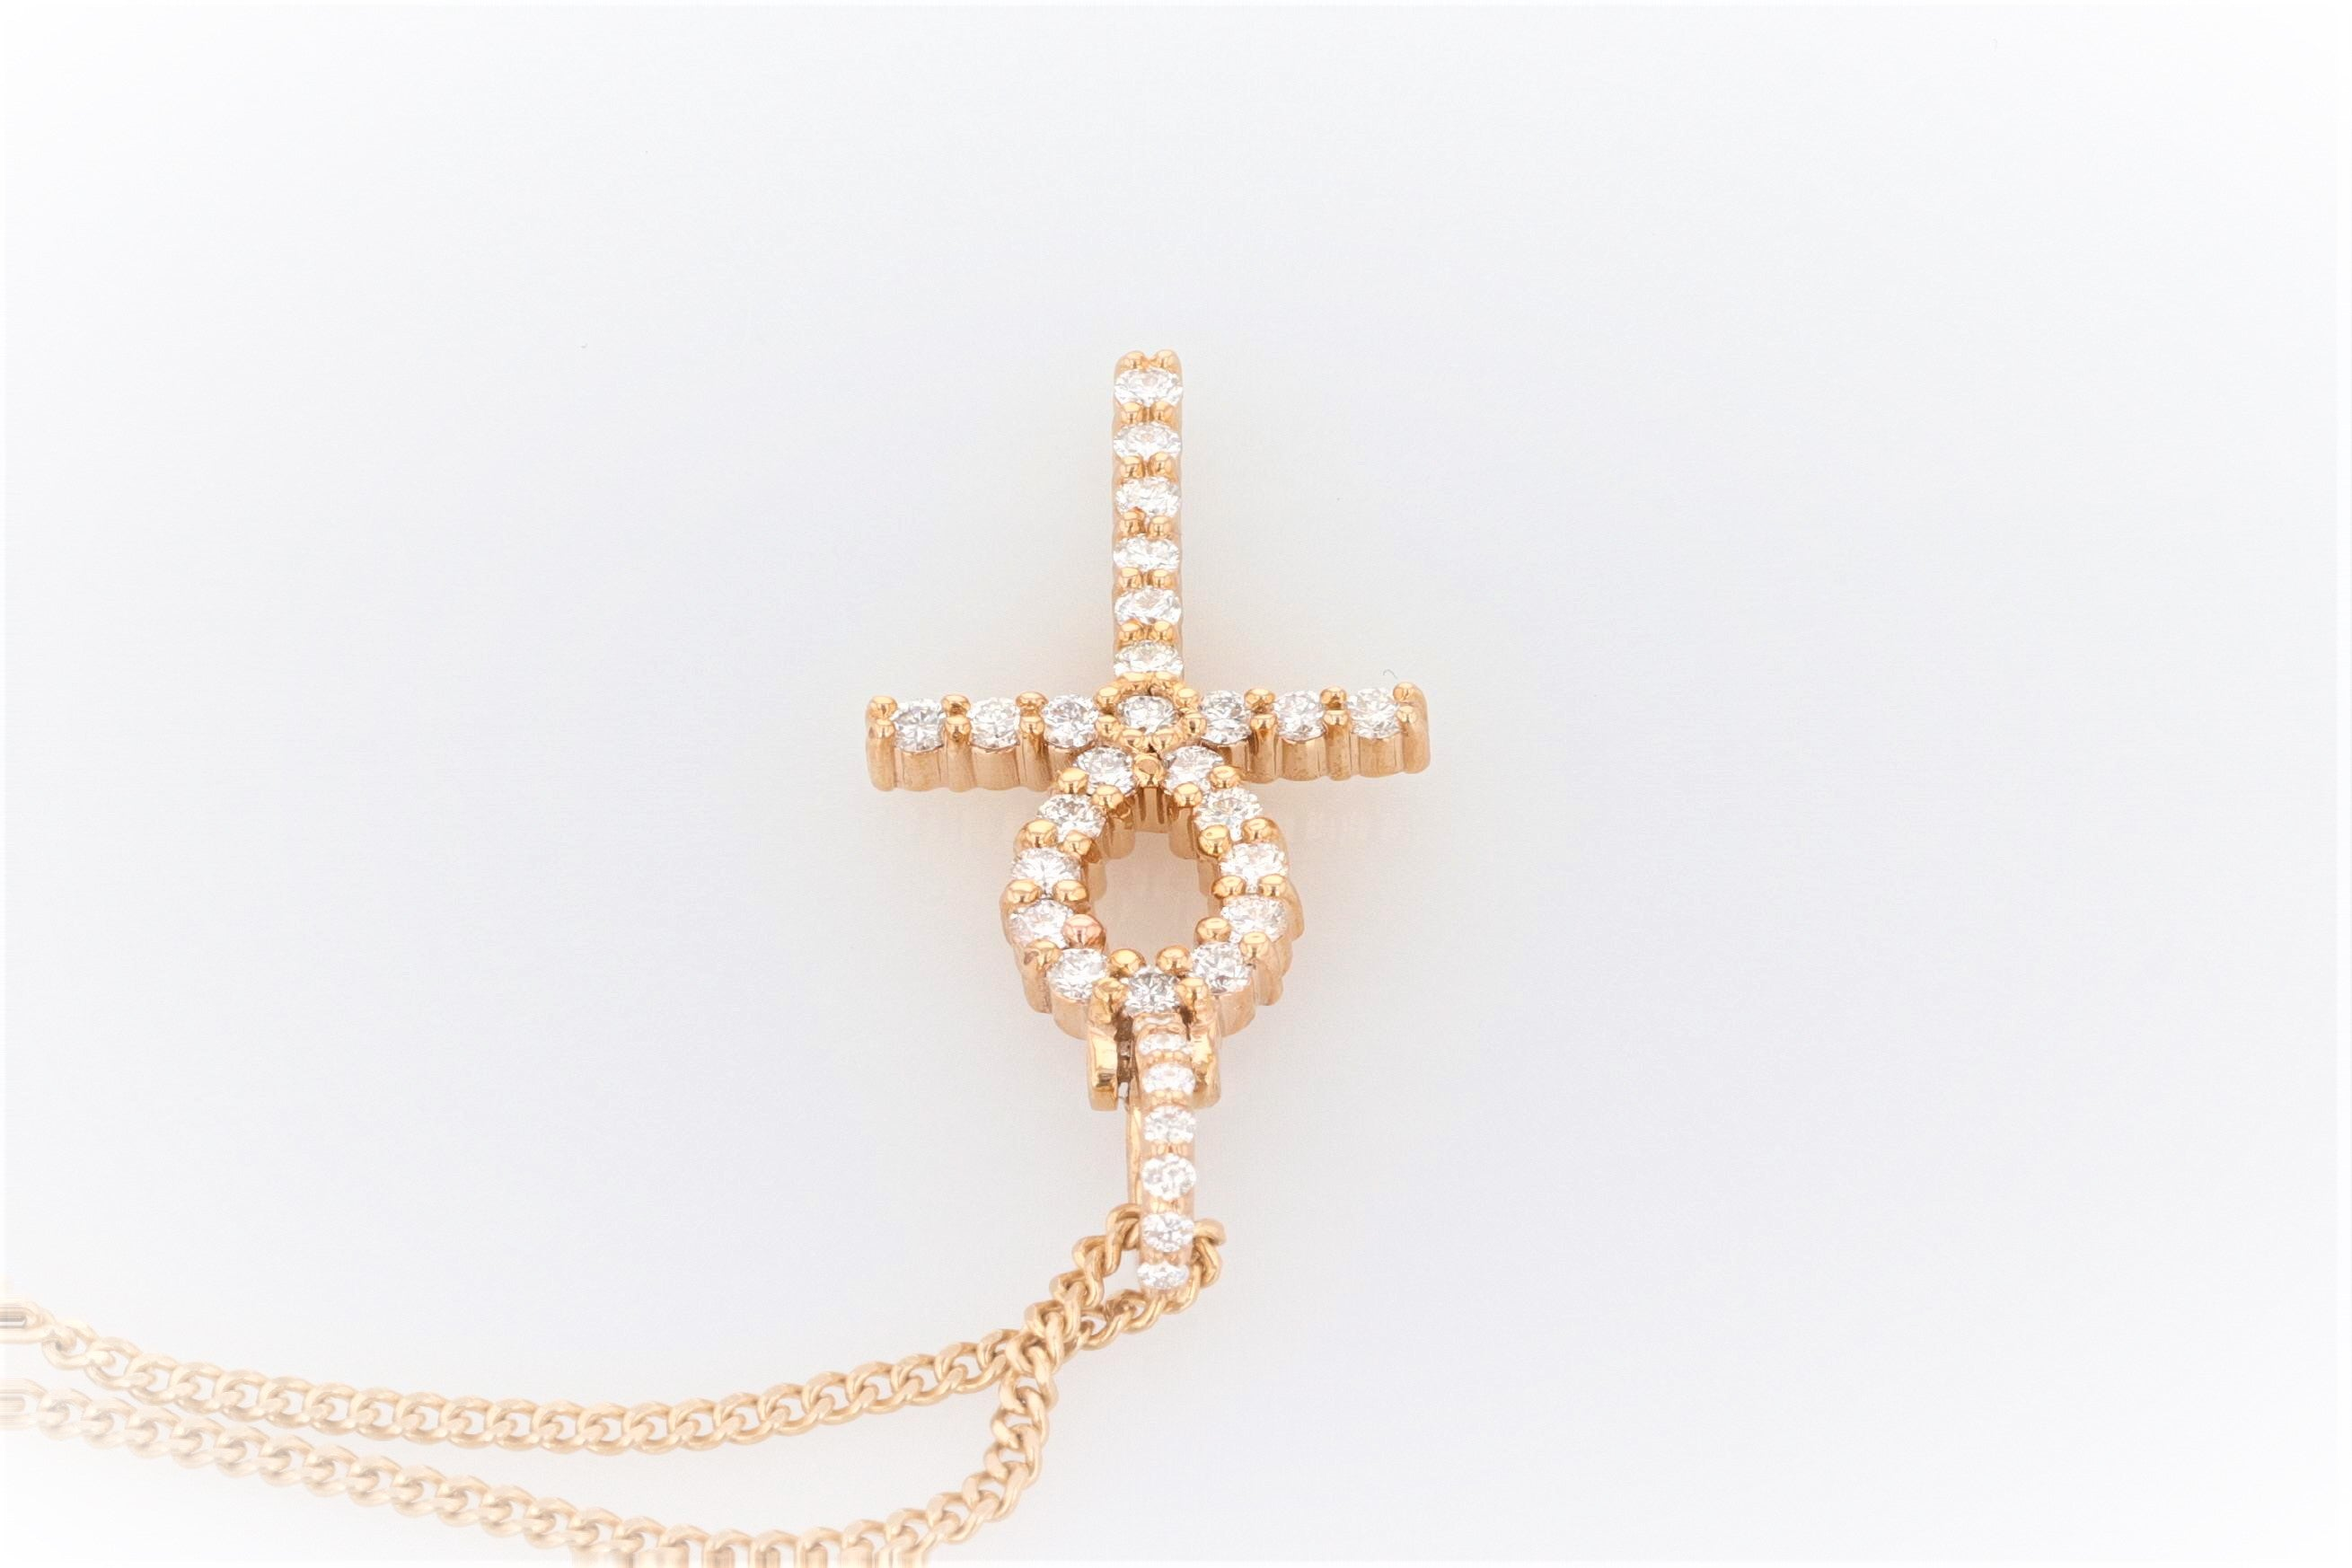 14K Women's Yellow Gold (Stamped) 'ANKH' Pendant